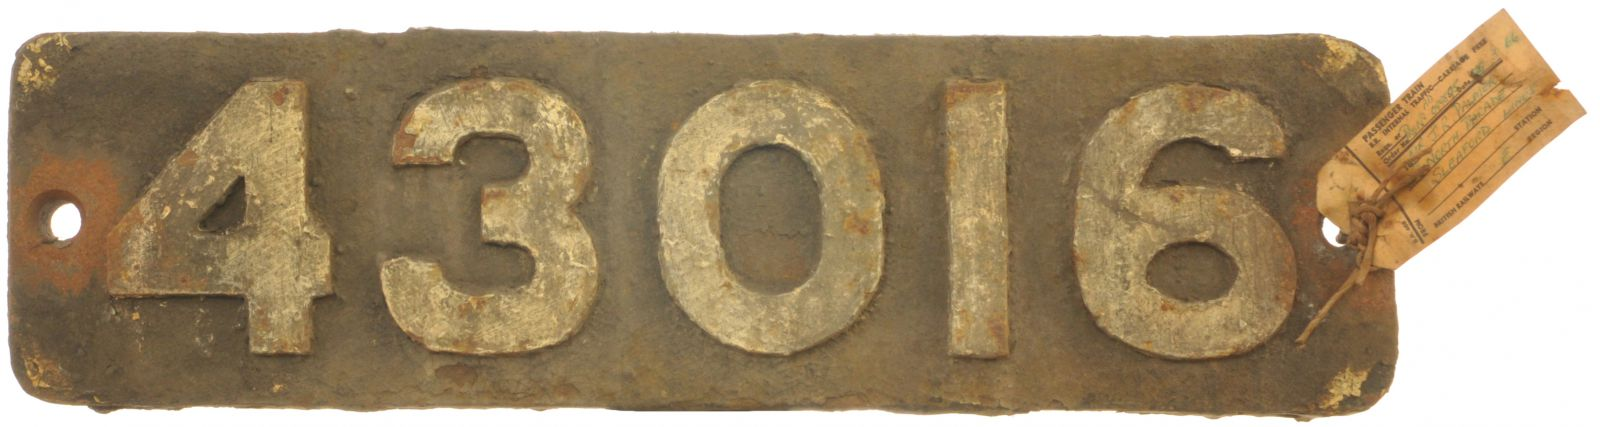 Lot 60 - Railway Locomotive Smokebox Numberplates, 43016: A smokebox numberplate, 43016, from a LMS Class 4